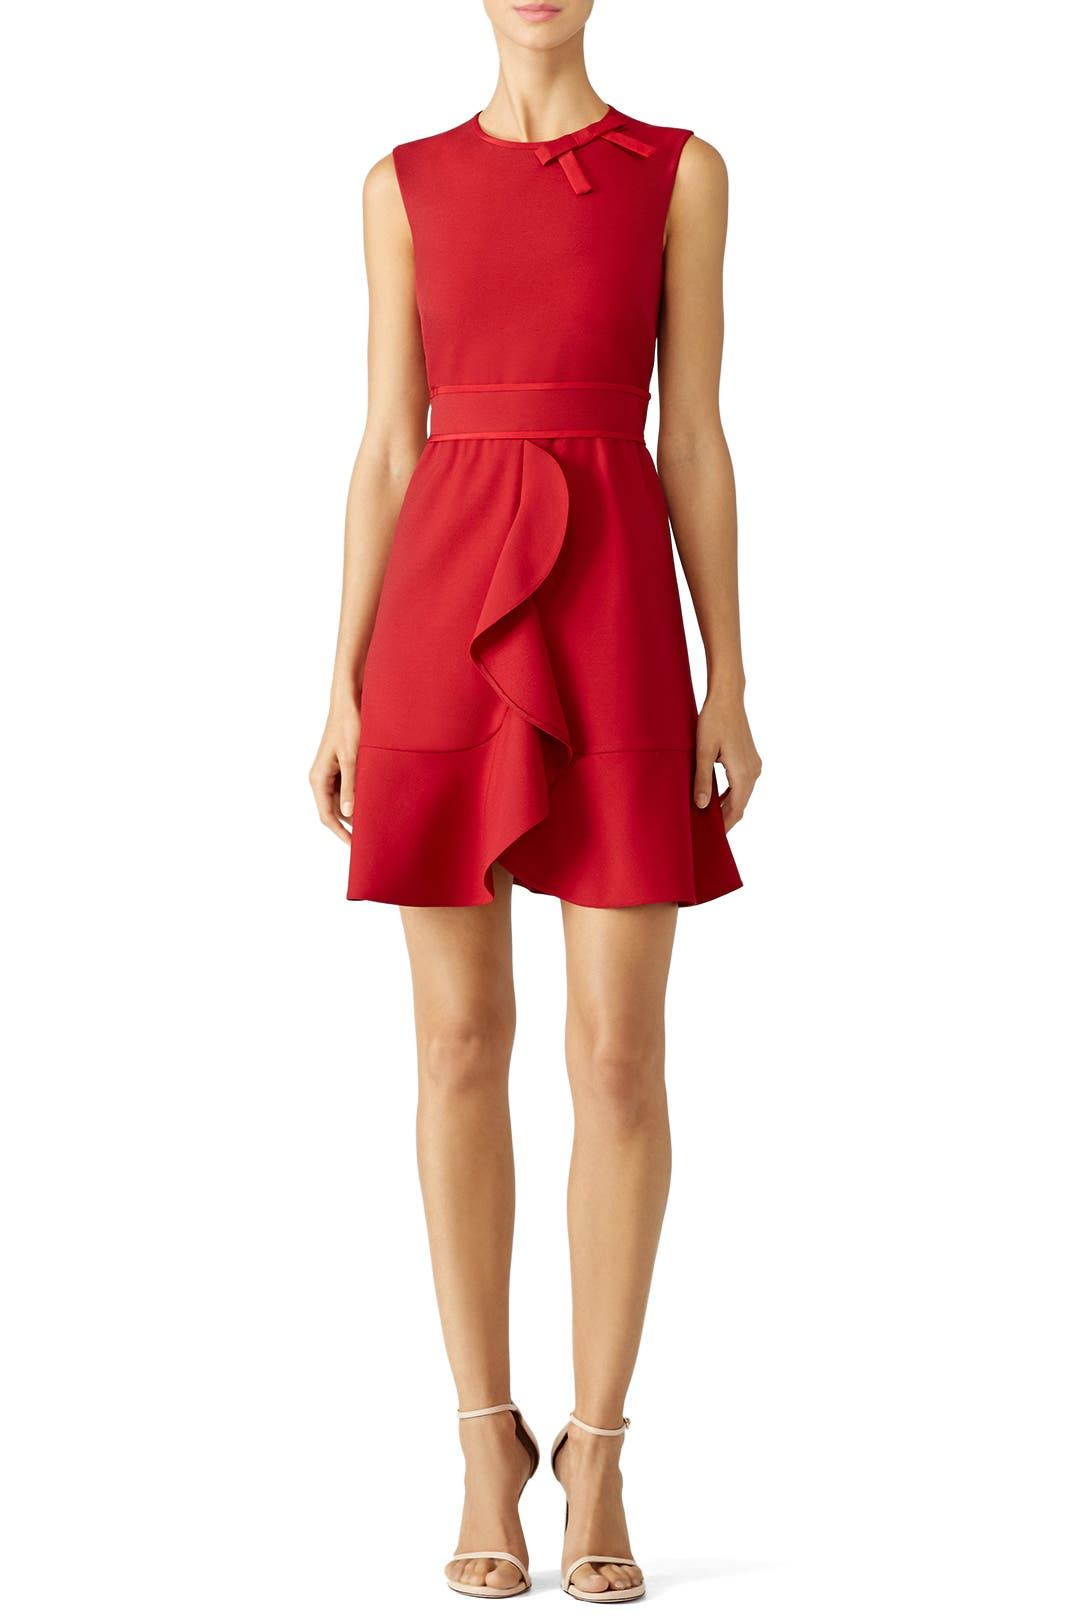 b37855ee94 Valentino Red Dress With Bow